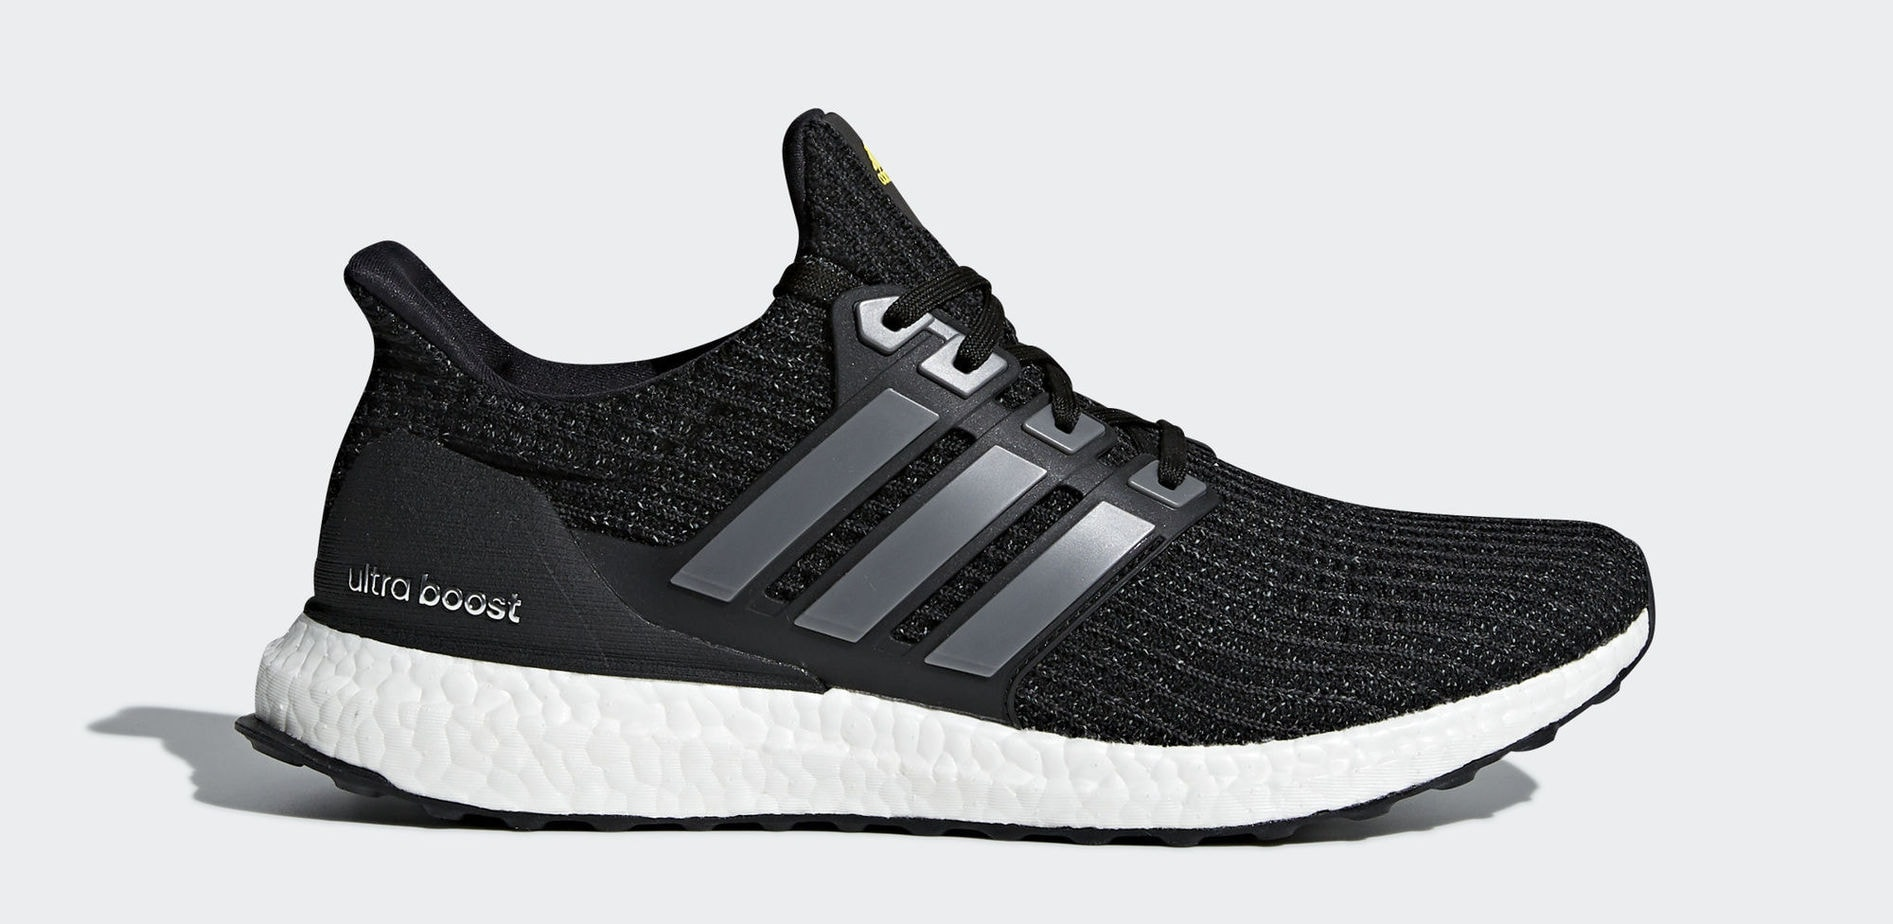 5606589000b33 adidas Ultra Boost 4.0 LTD  5th Anniversary